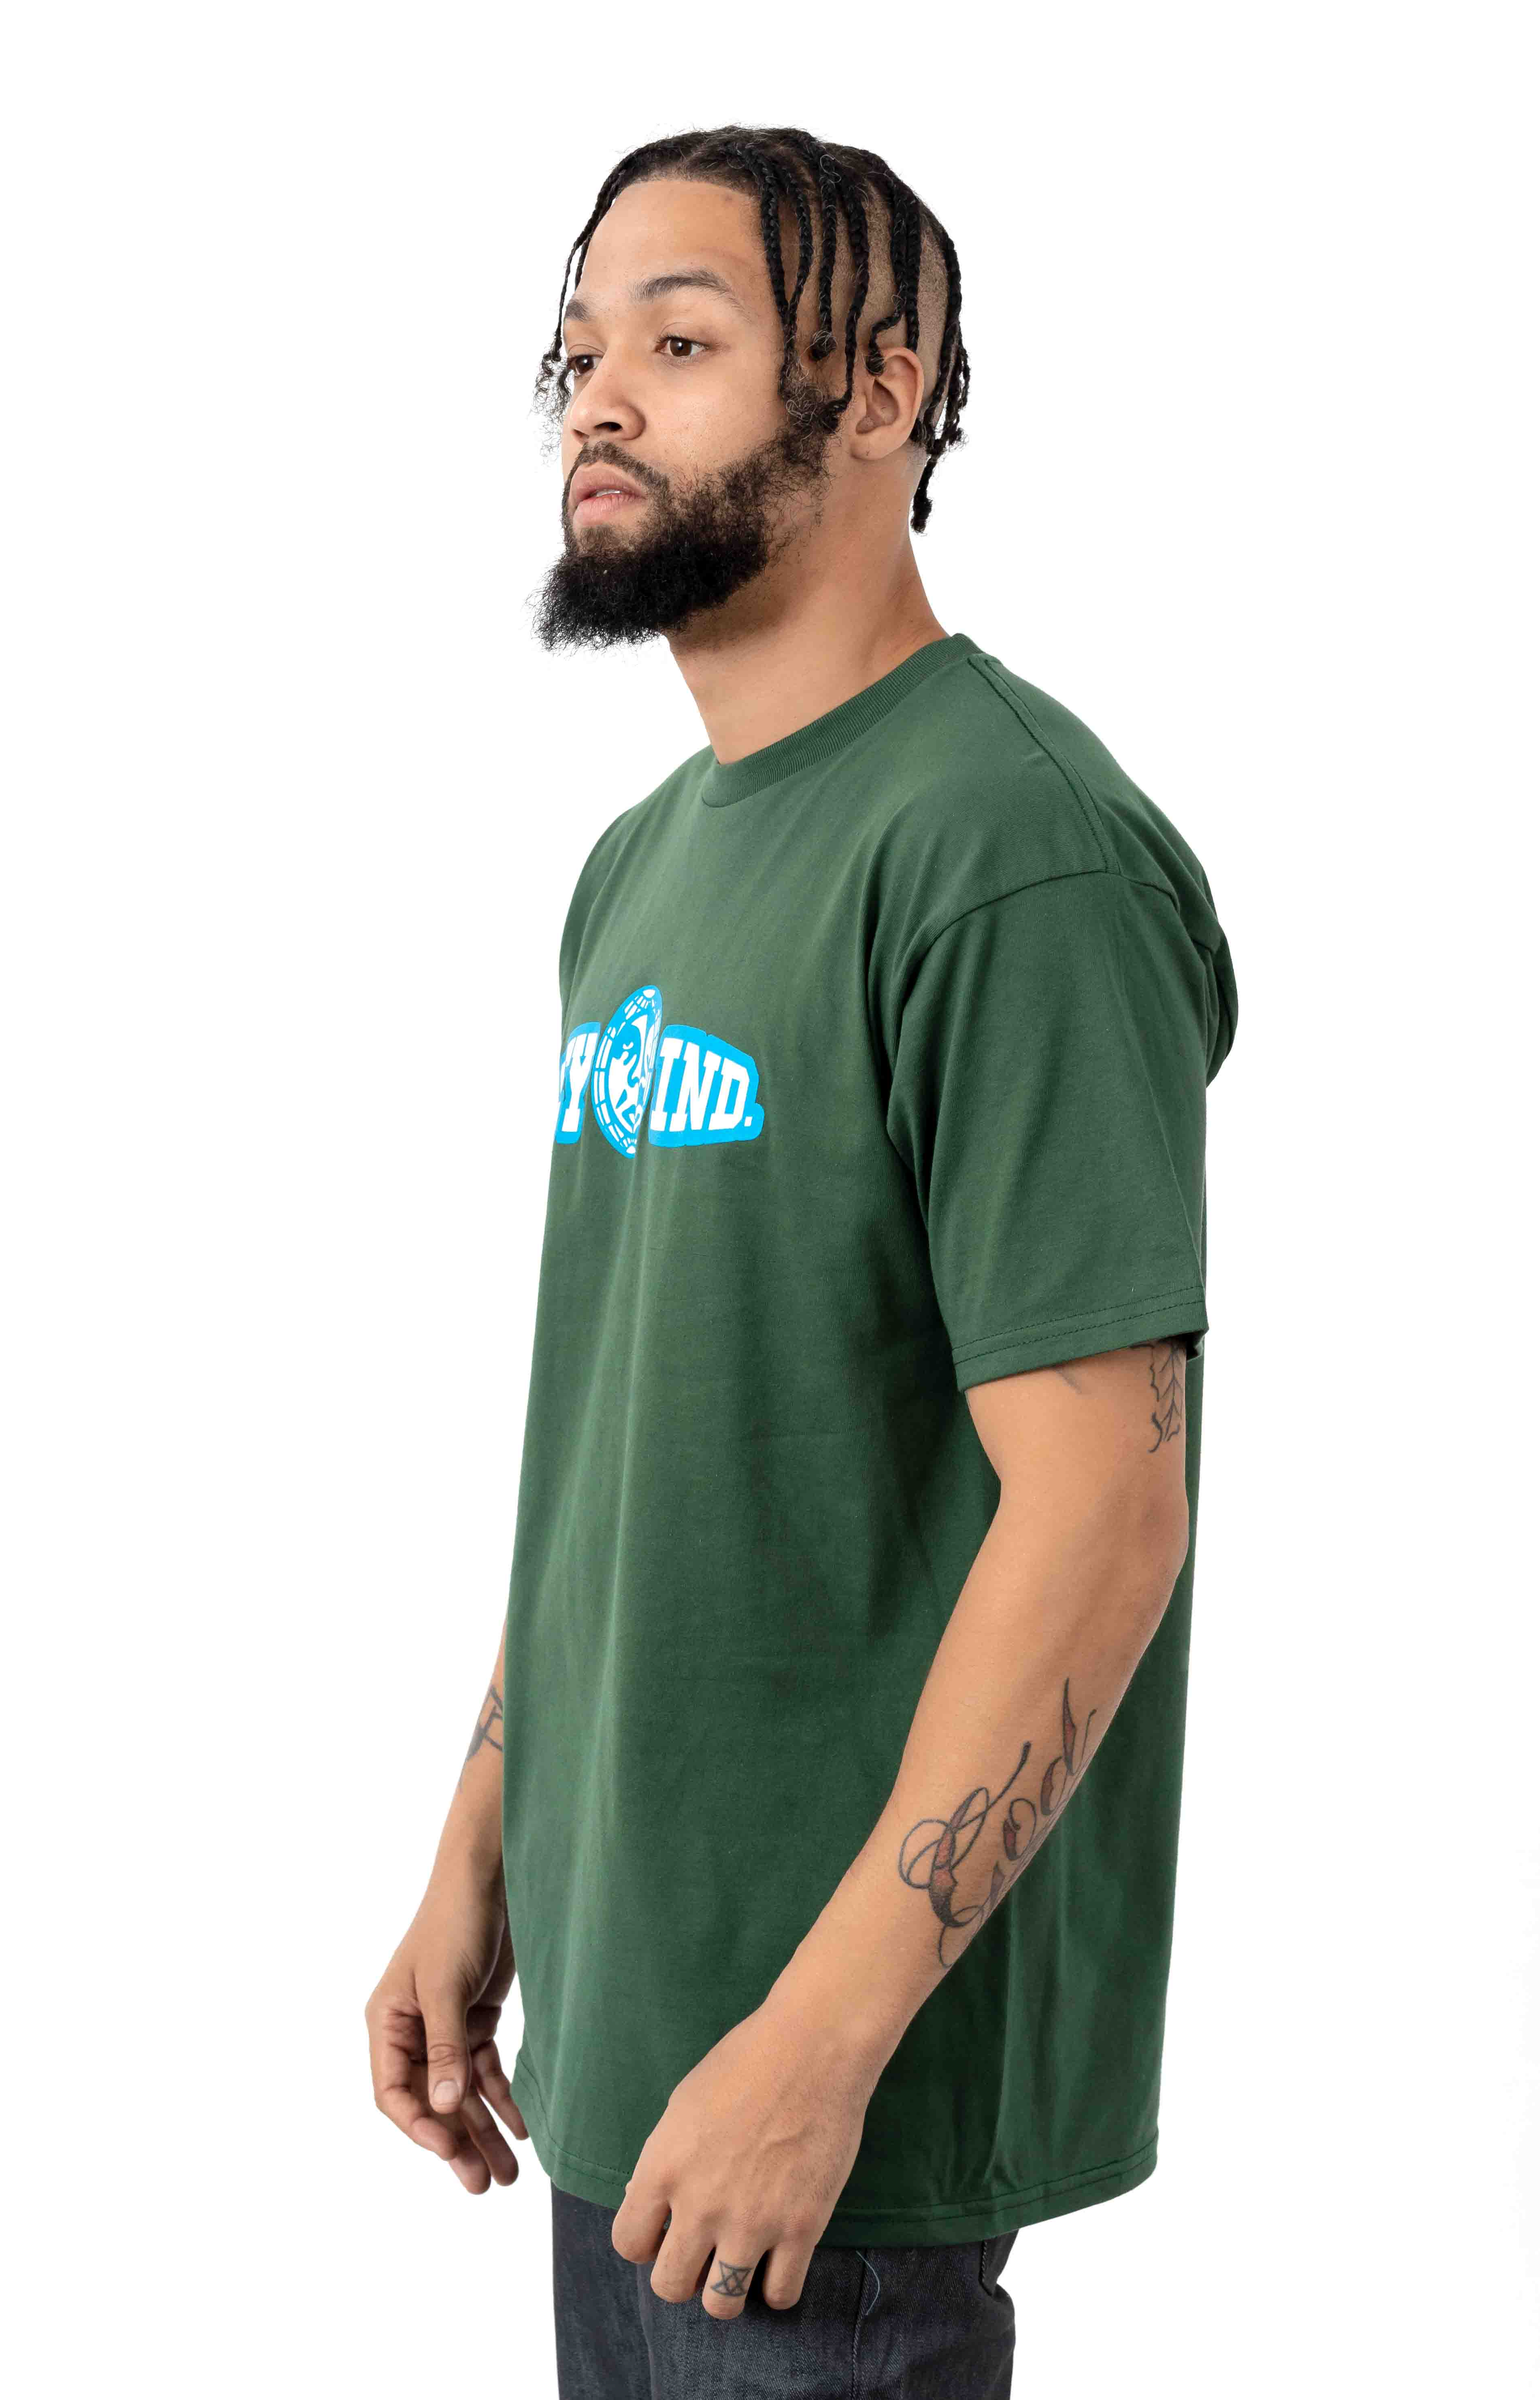 Obey Unity & Respect T-Shirt - Forest Green  2